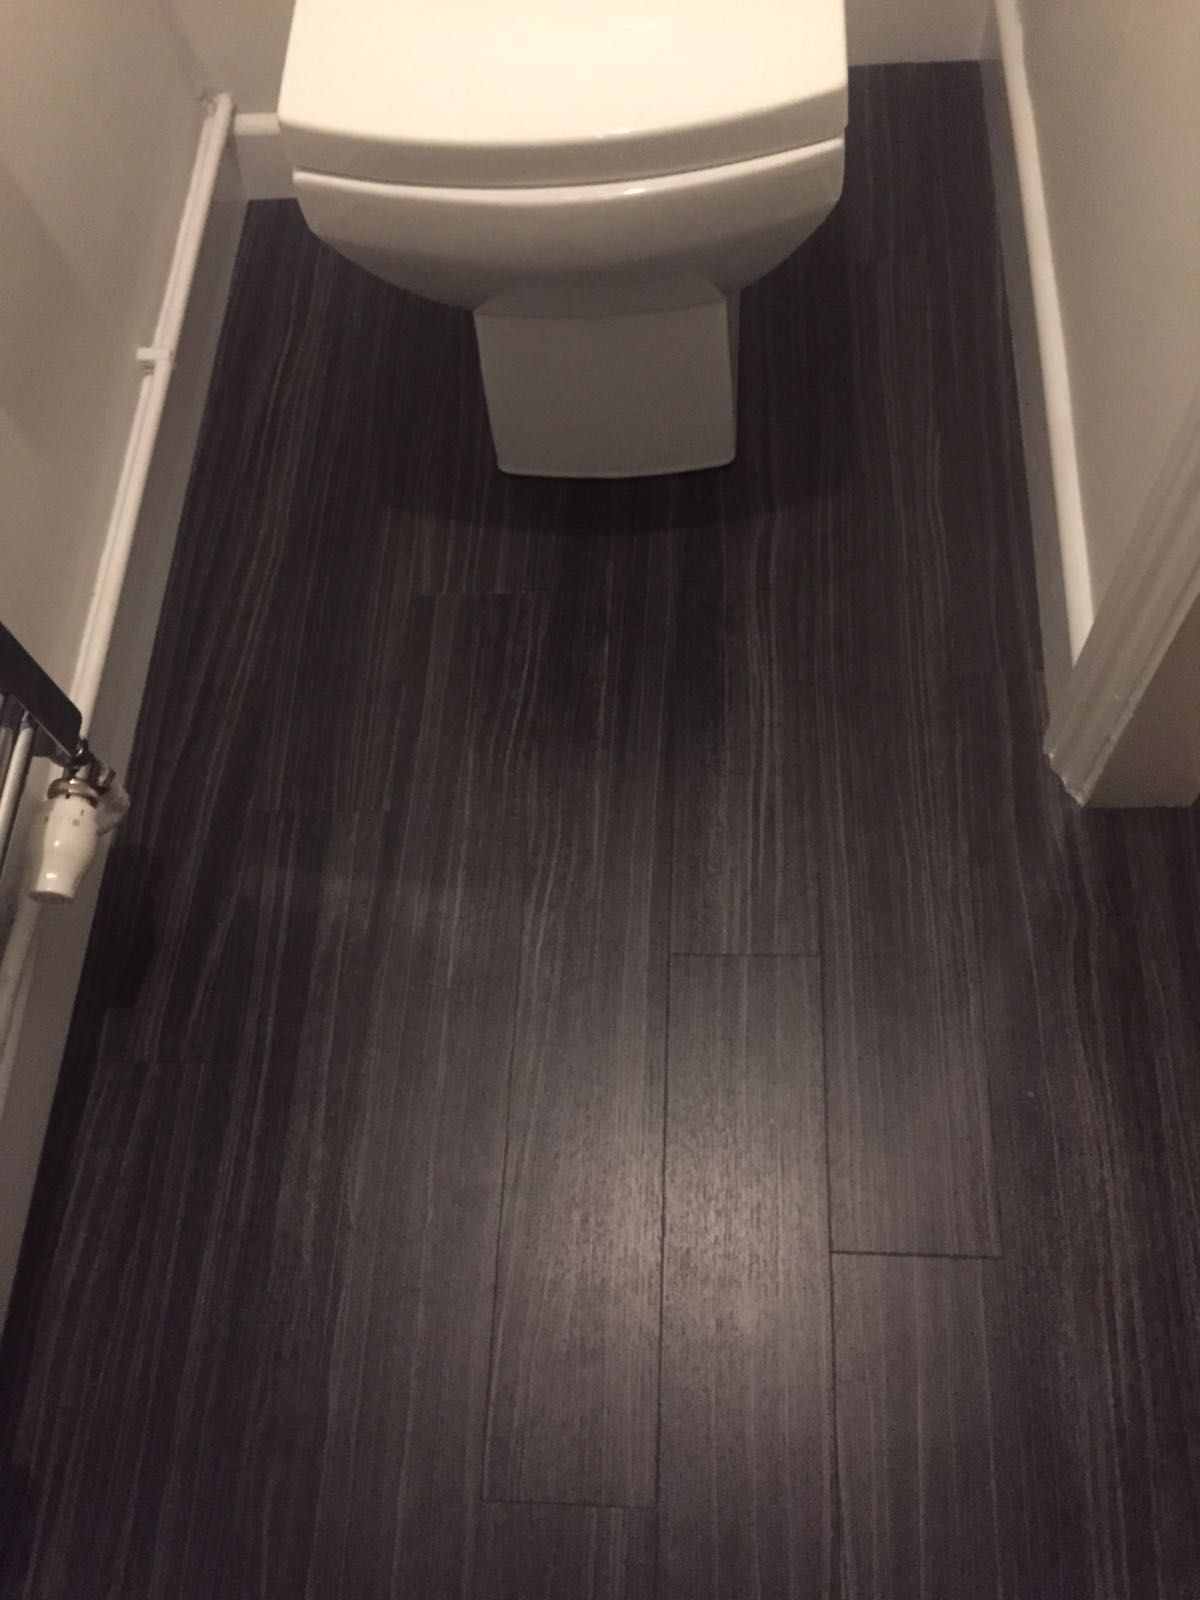 A Bathroom Floor That We Fitted In Leicester Www Michael John Co